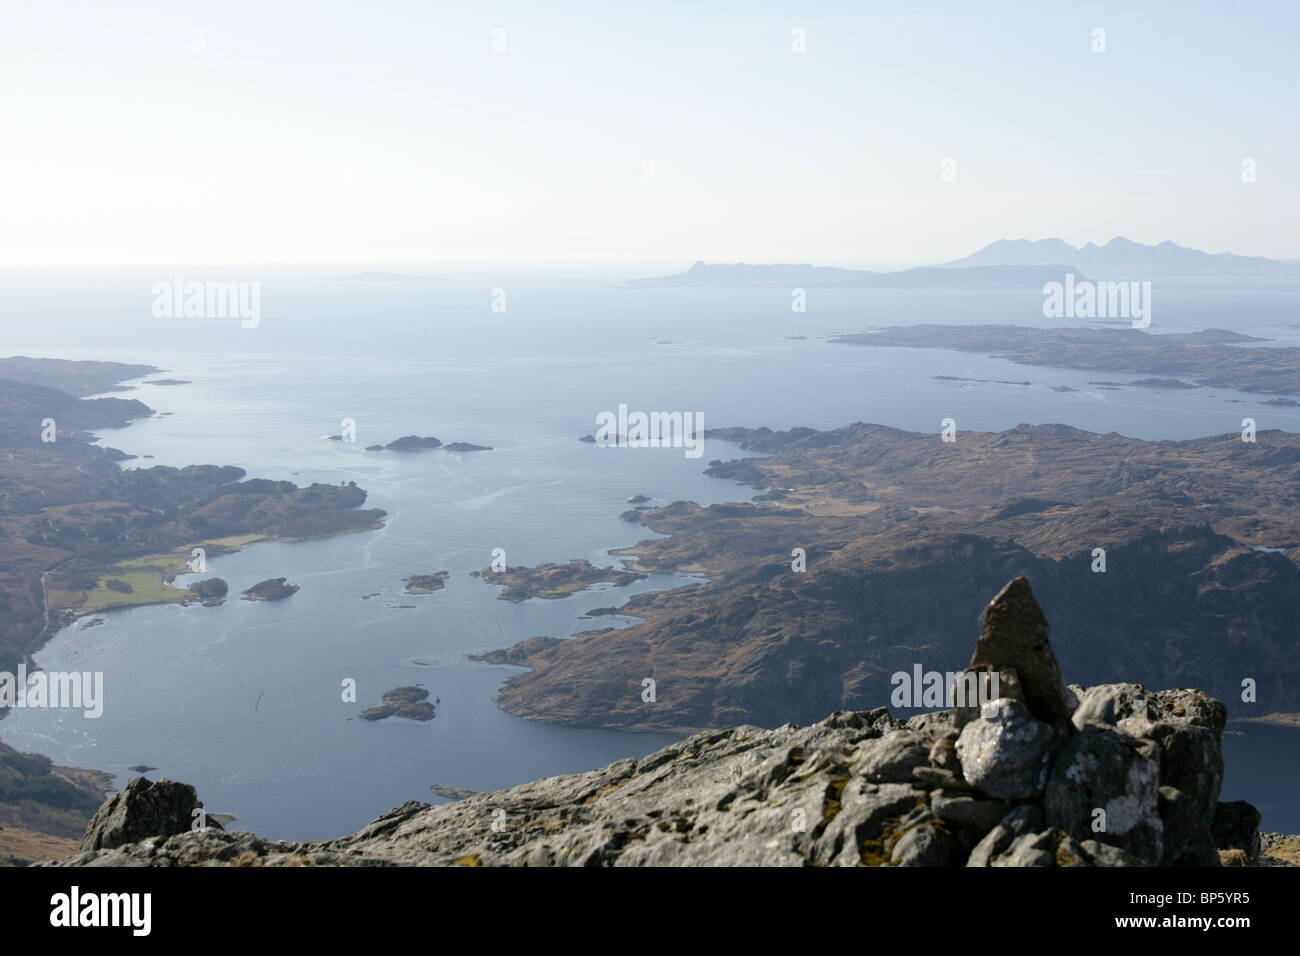 View from near the top of Rois-bheinn looking down onto Loch Ailort. - Stock Image